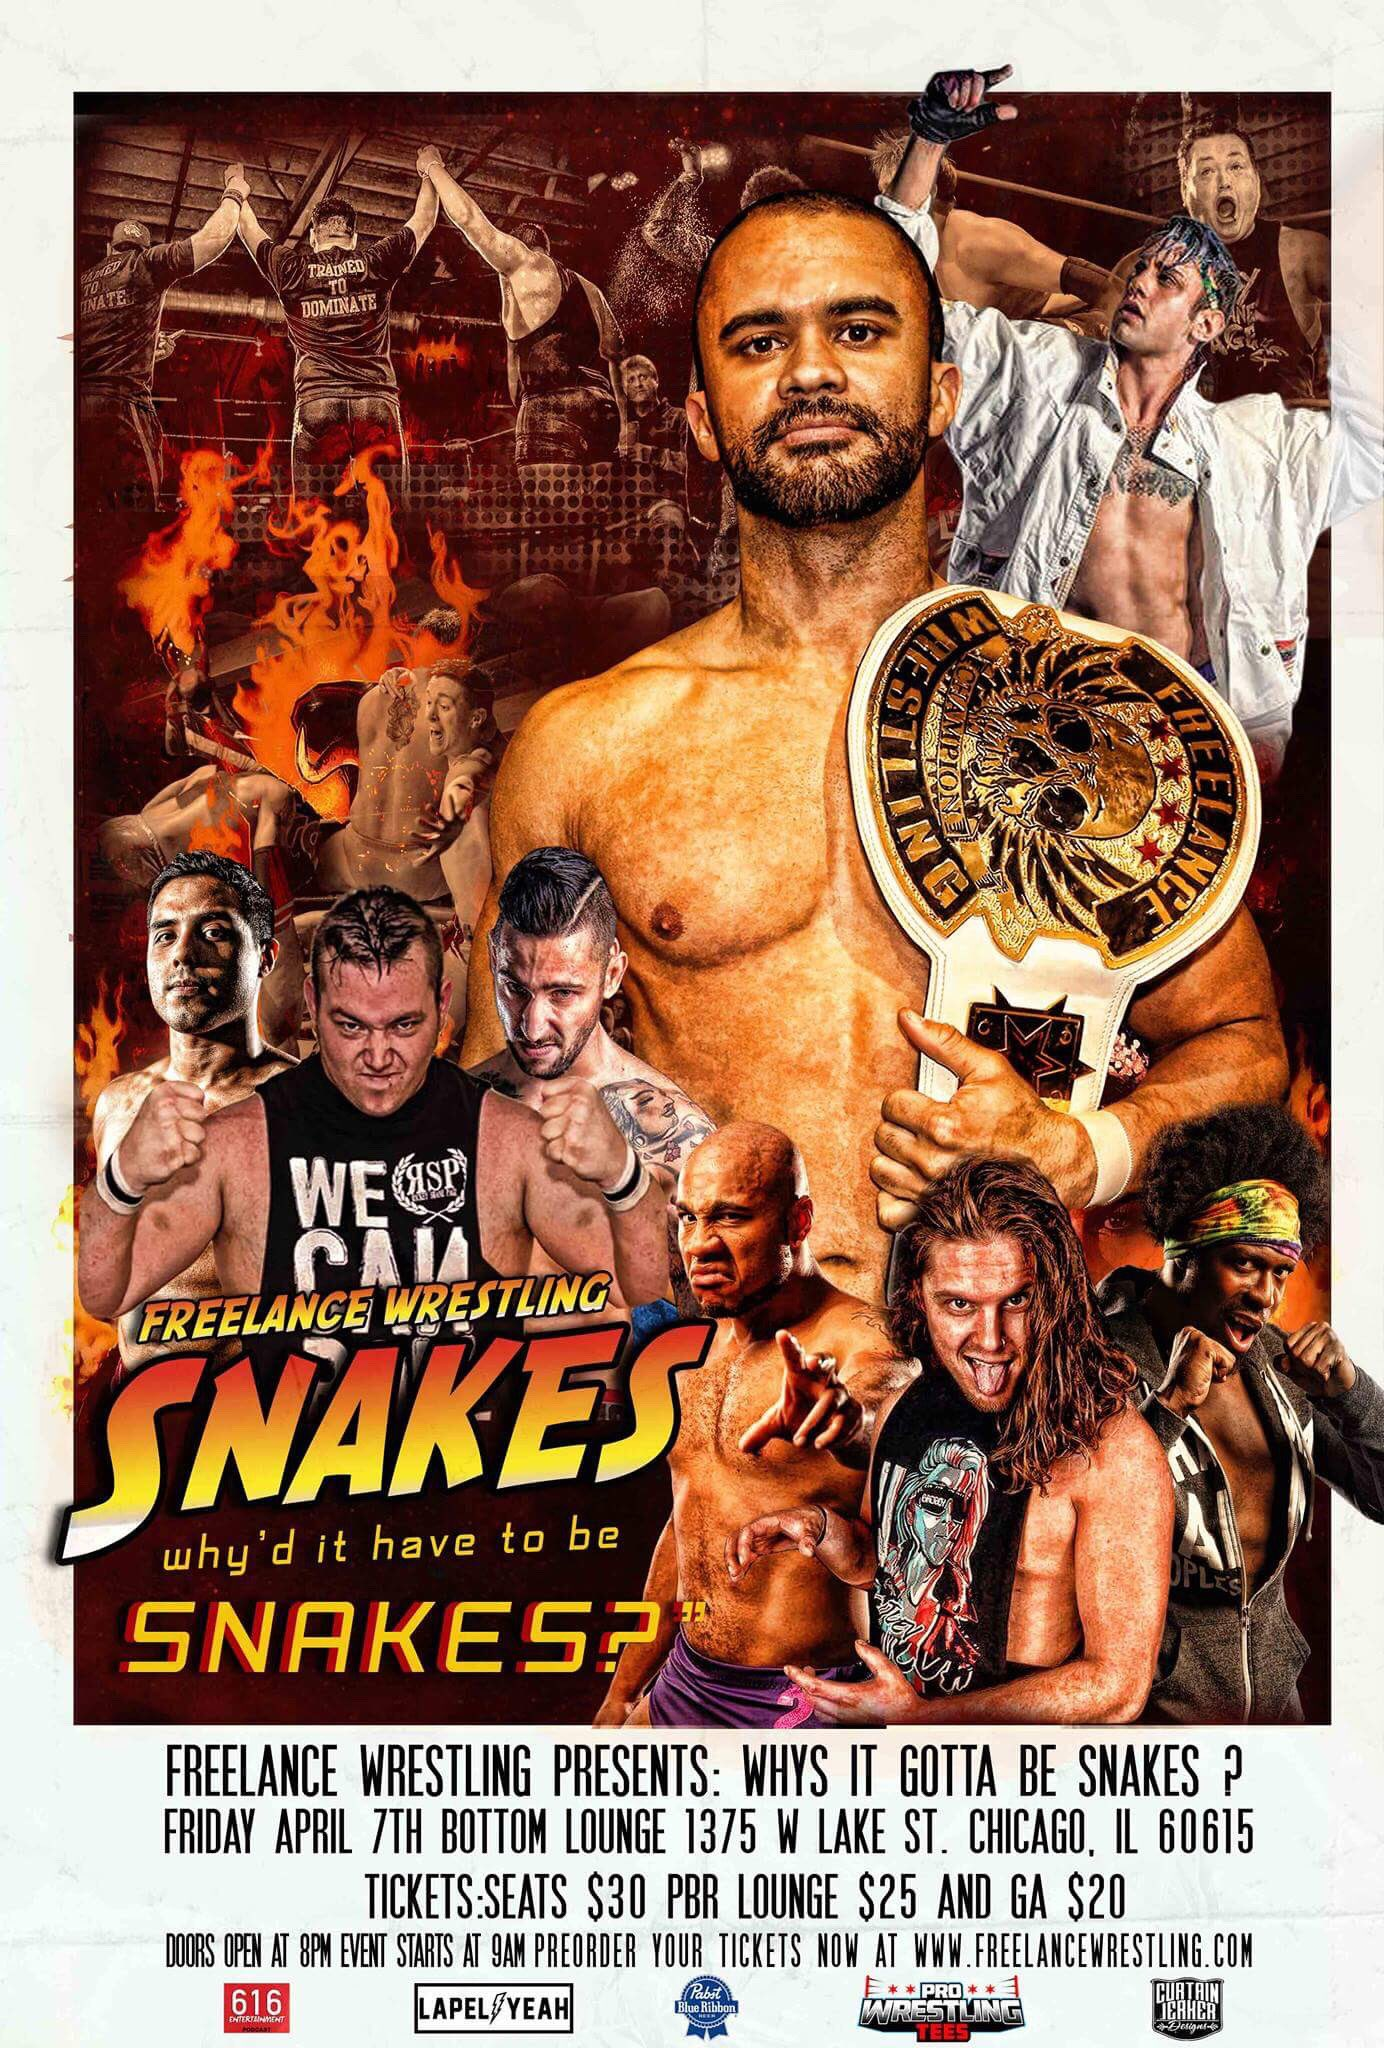 FREELANCE WRESTLING PRESENTS: WHY'D IT HAVE TO BE SNAKES?